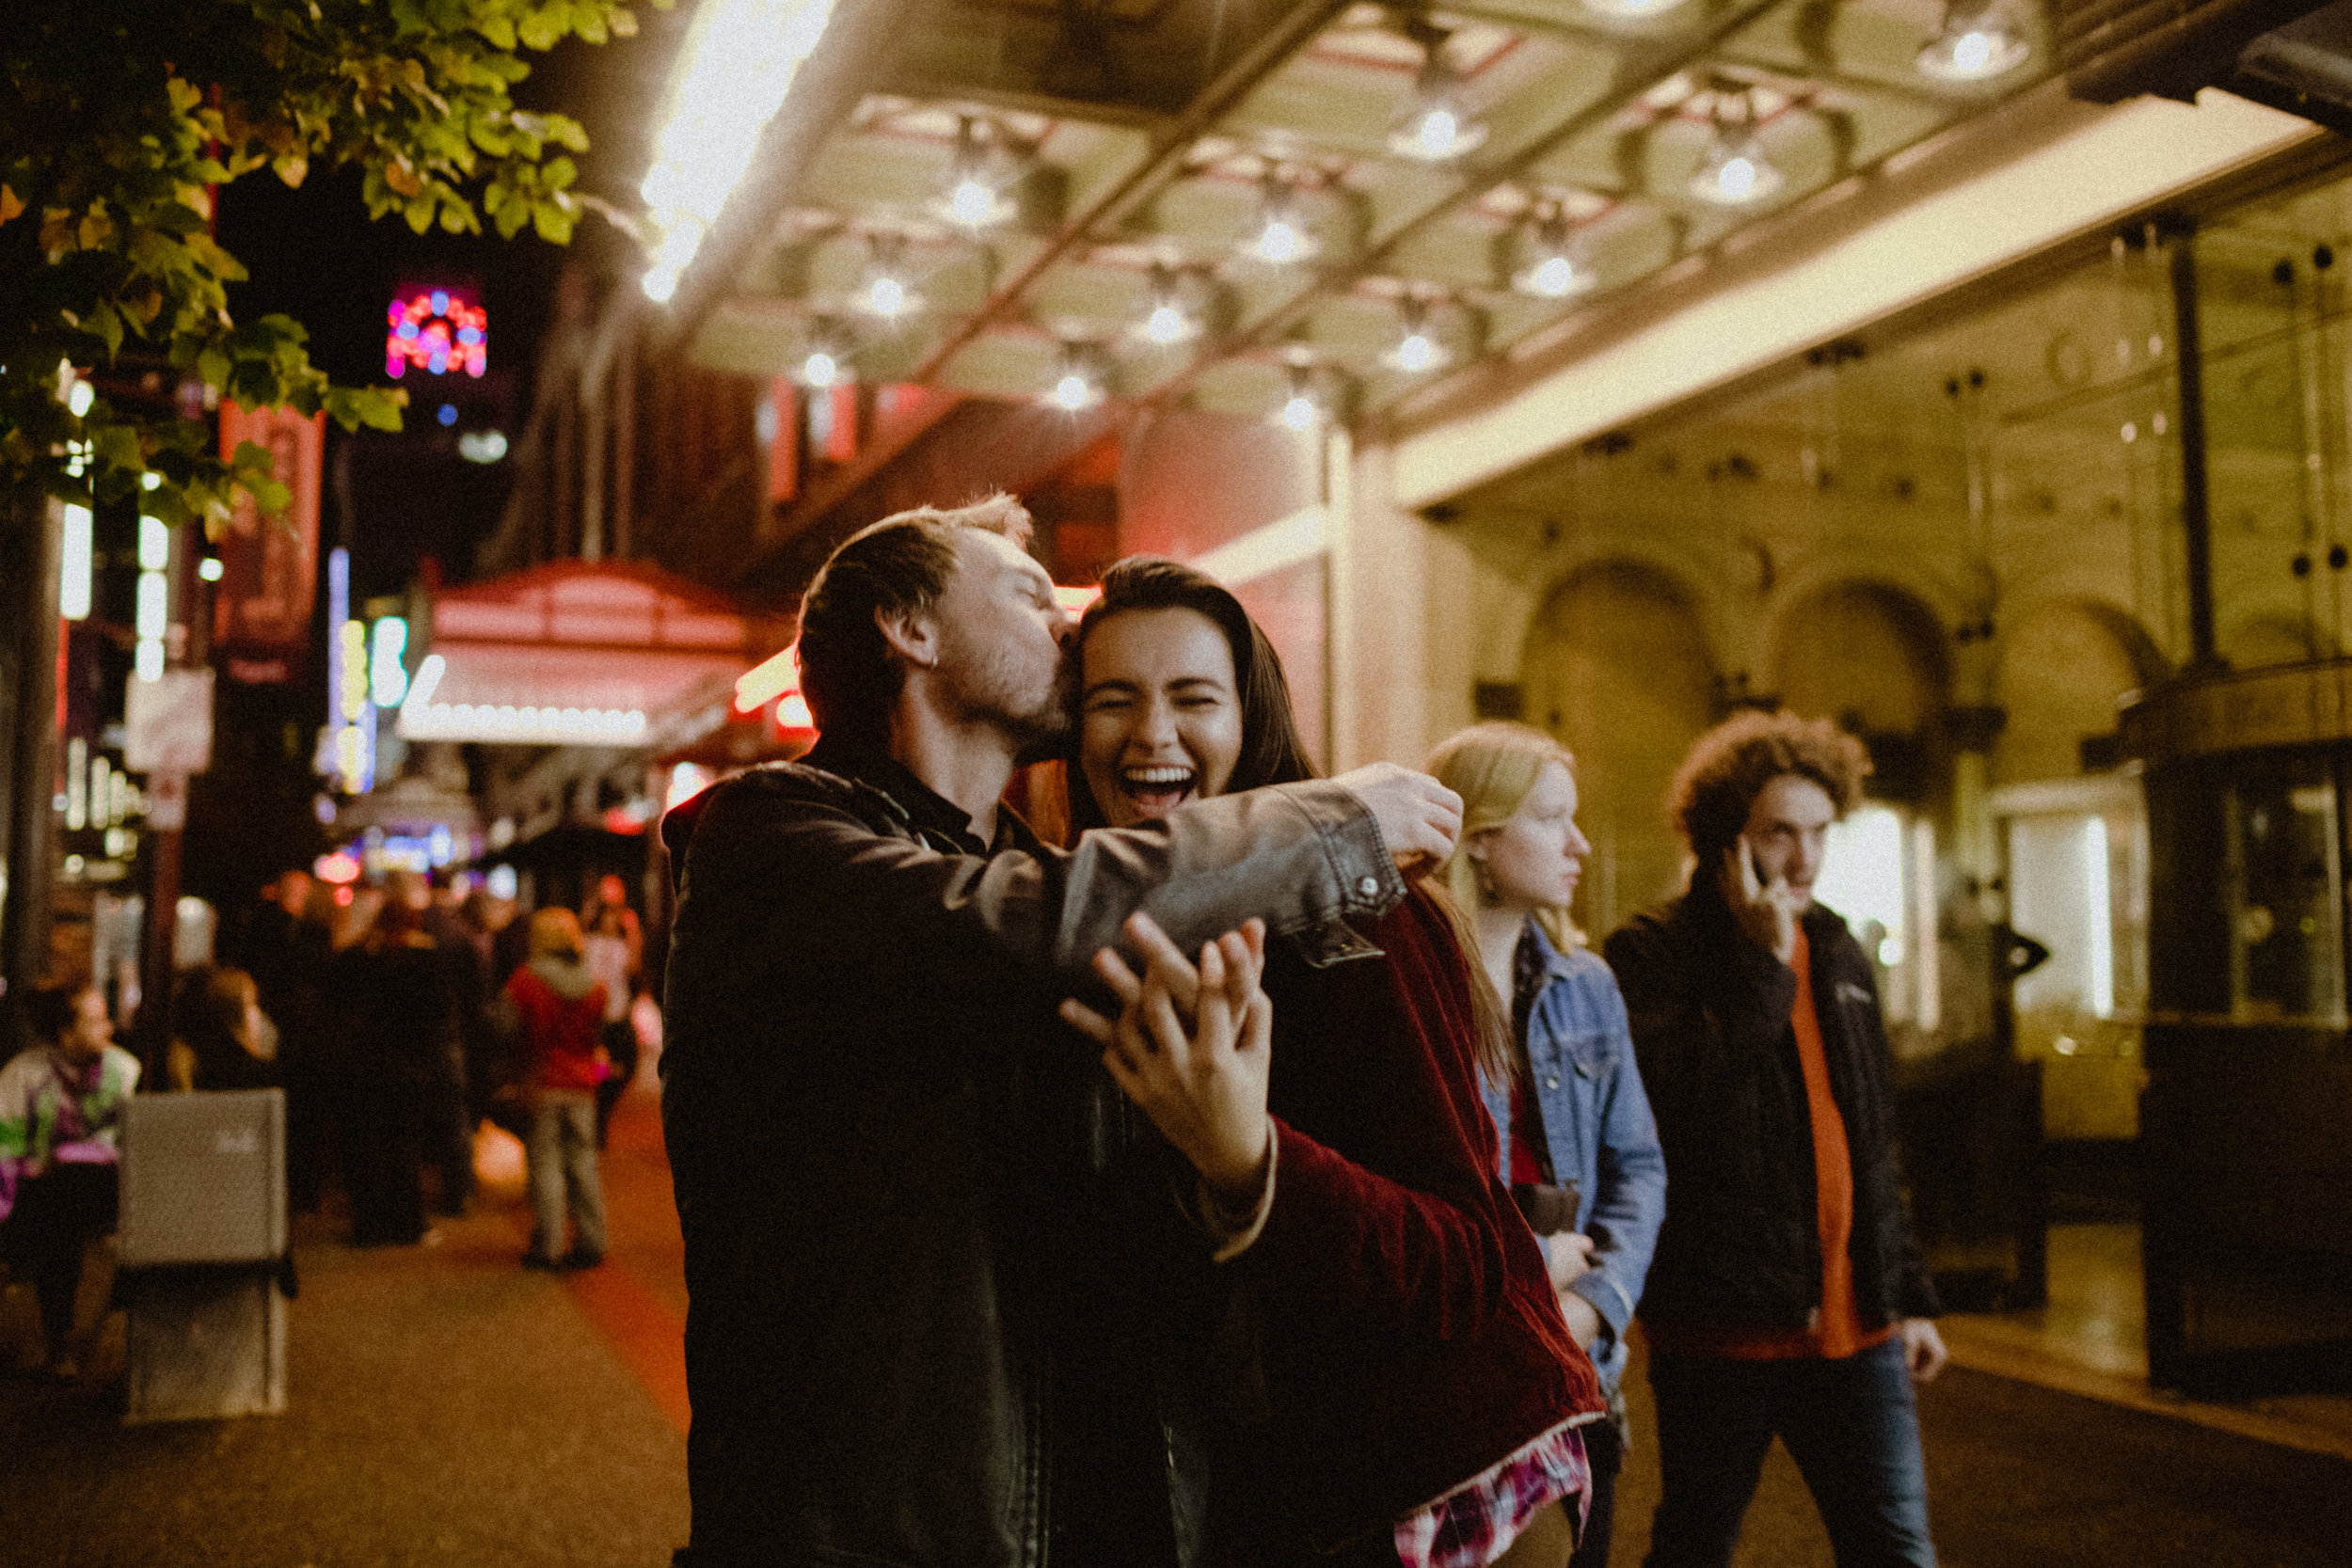 A joyful and romantic photo of a proposal in downtown Vancouver.